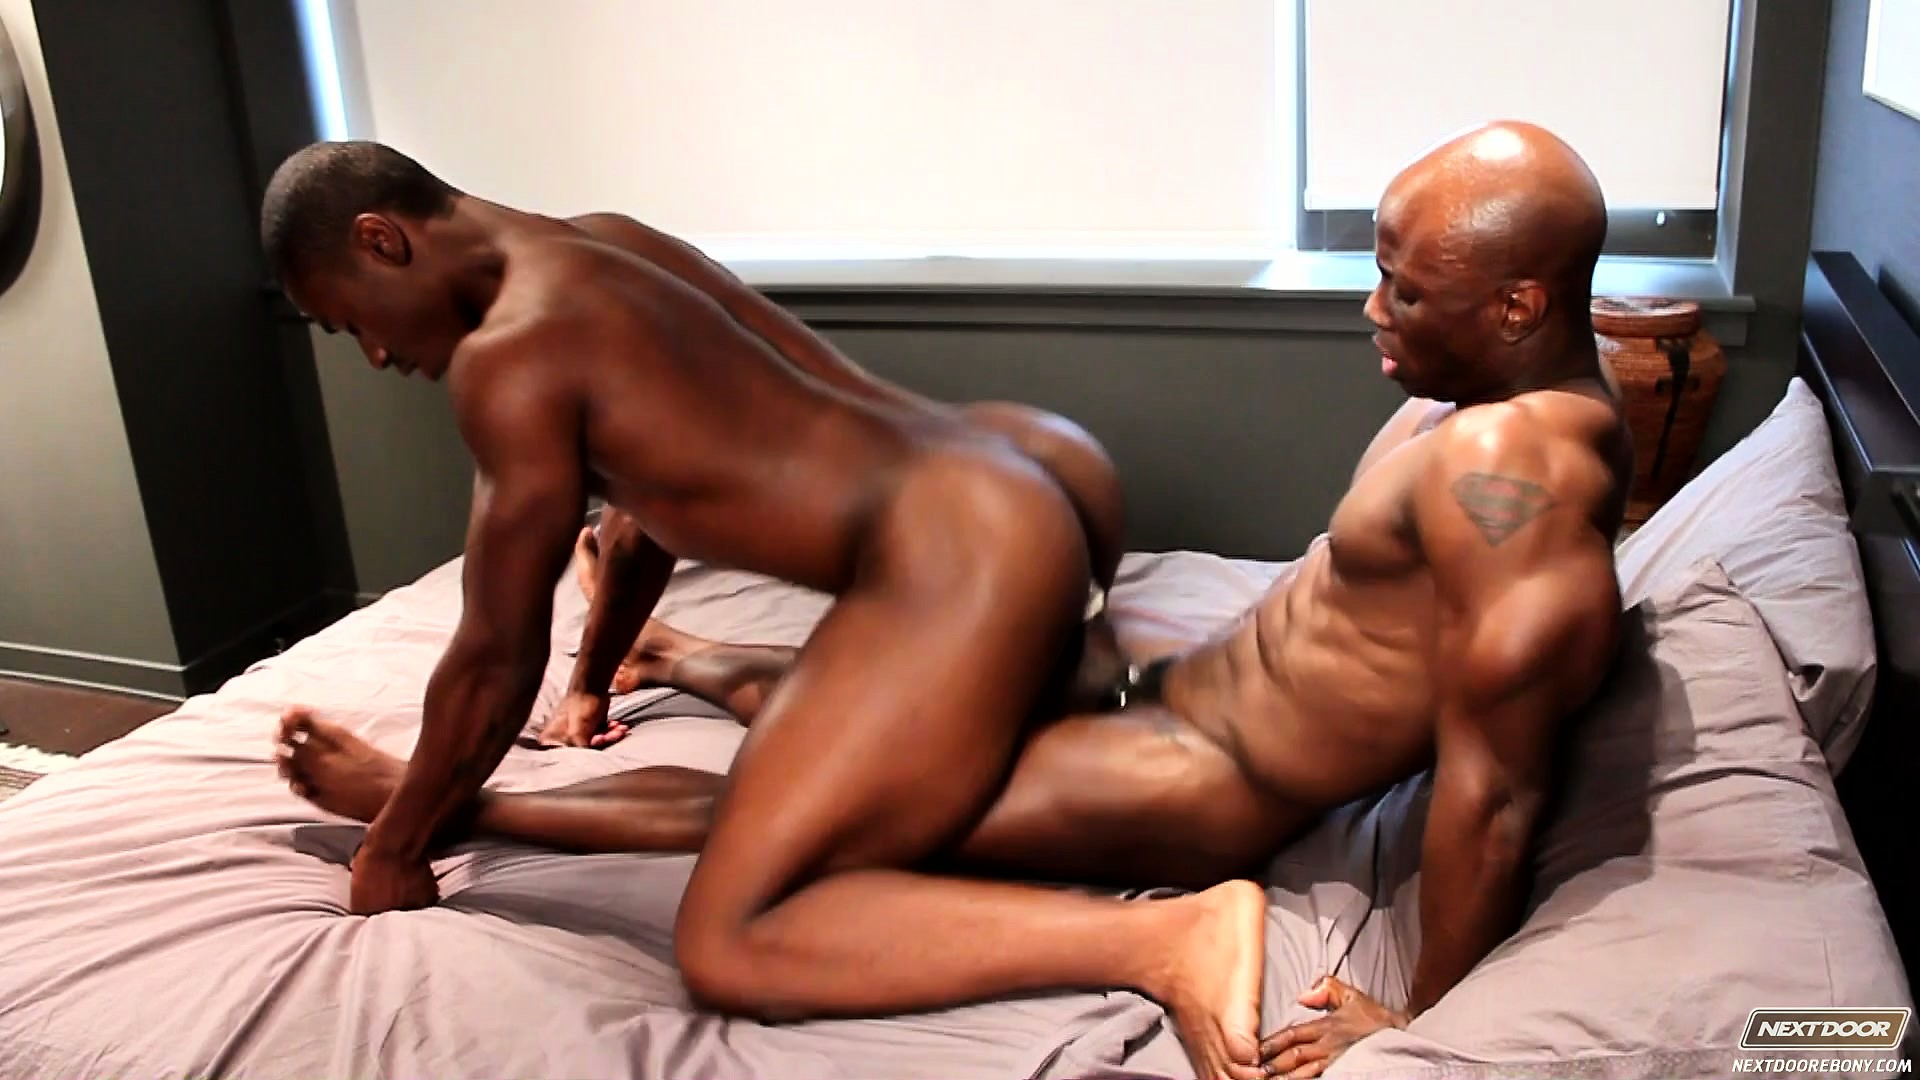 Porno Video of Black Gay Athlete Getting His Asshole Trained The Hardcore Way